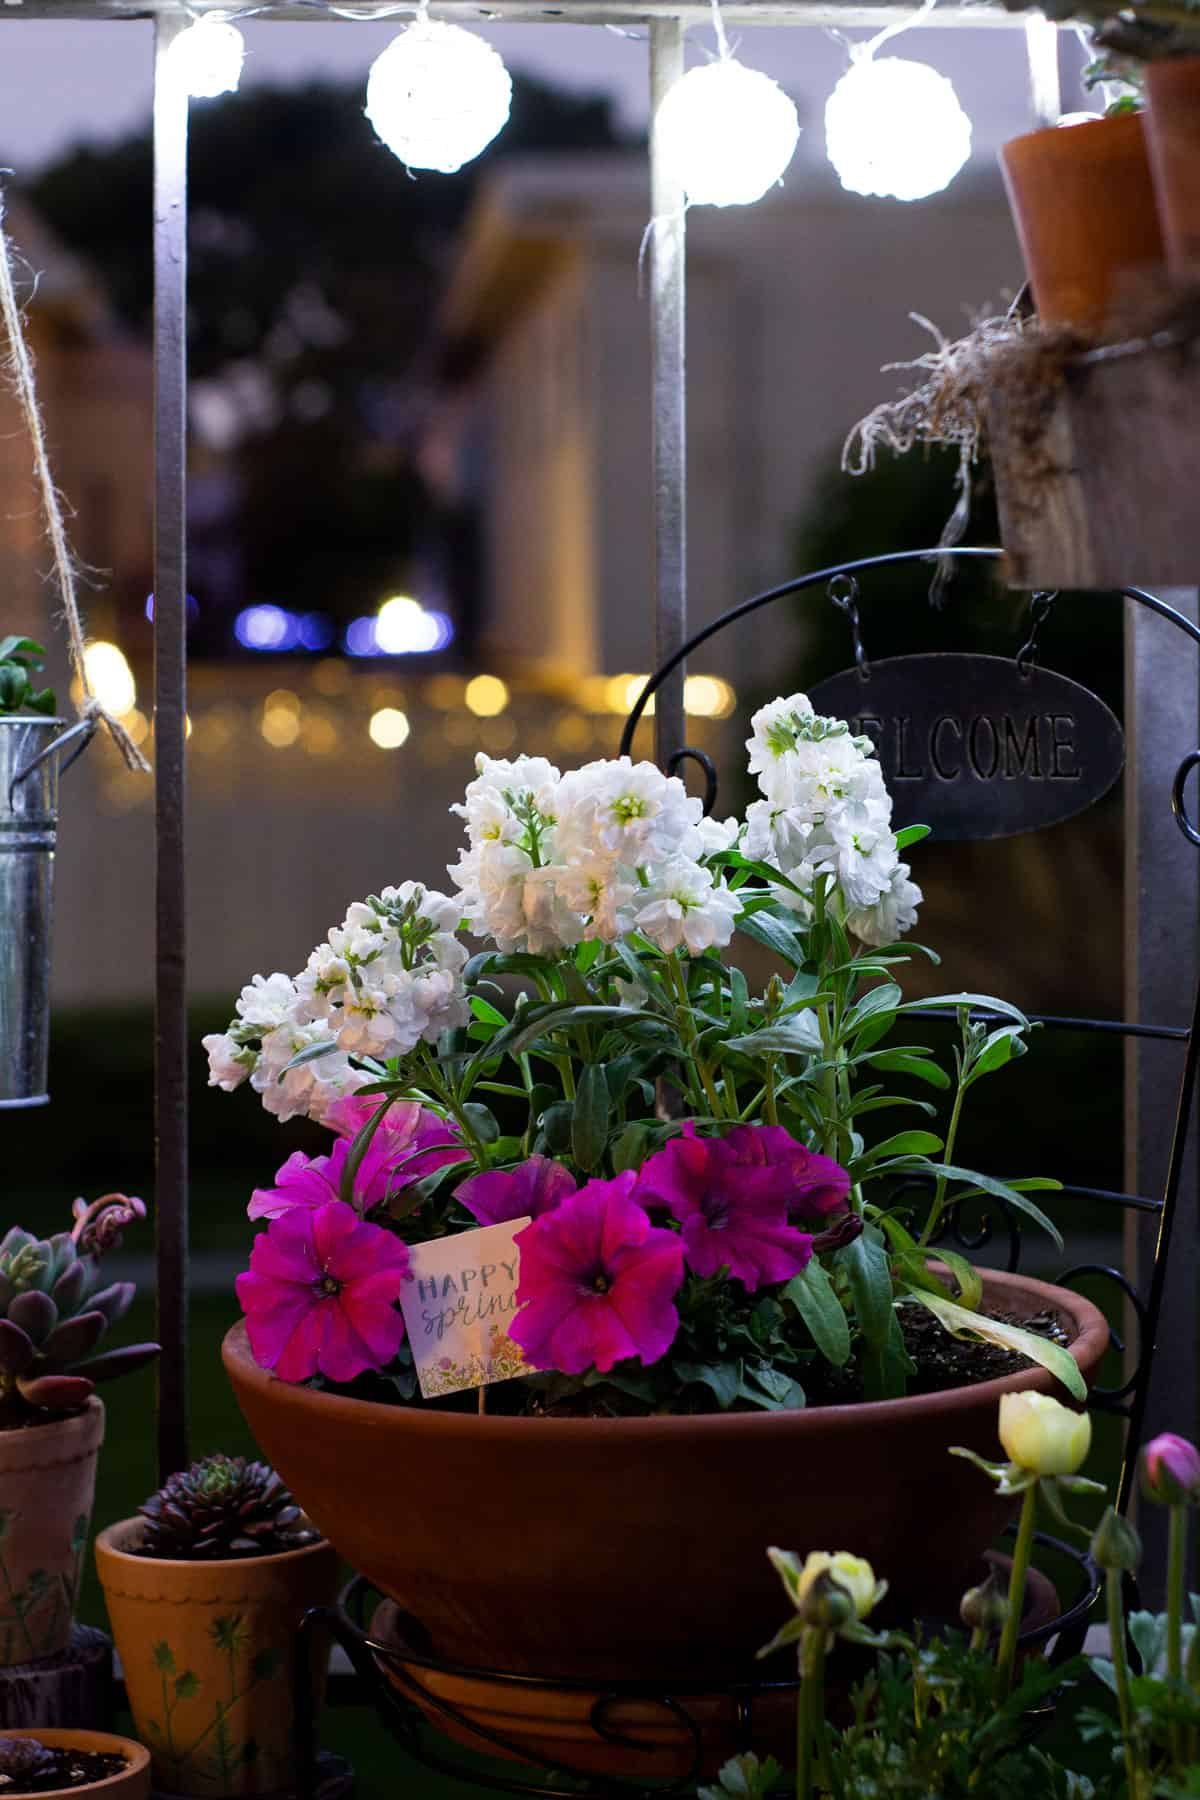 patio with flowers and twinkle lights at night